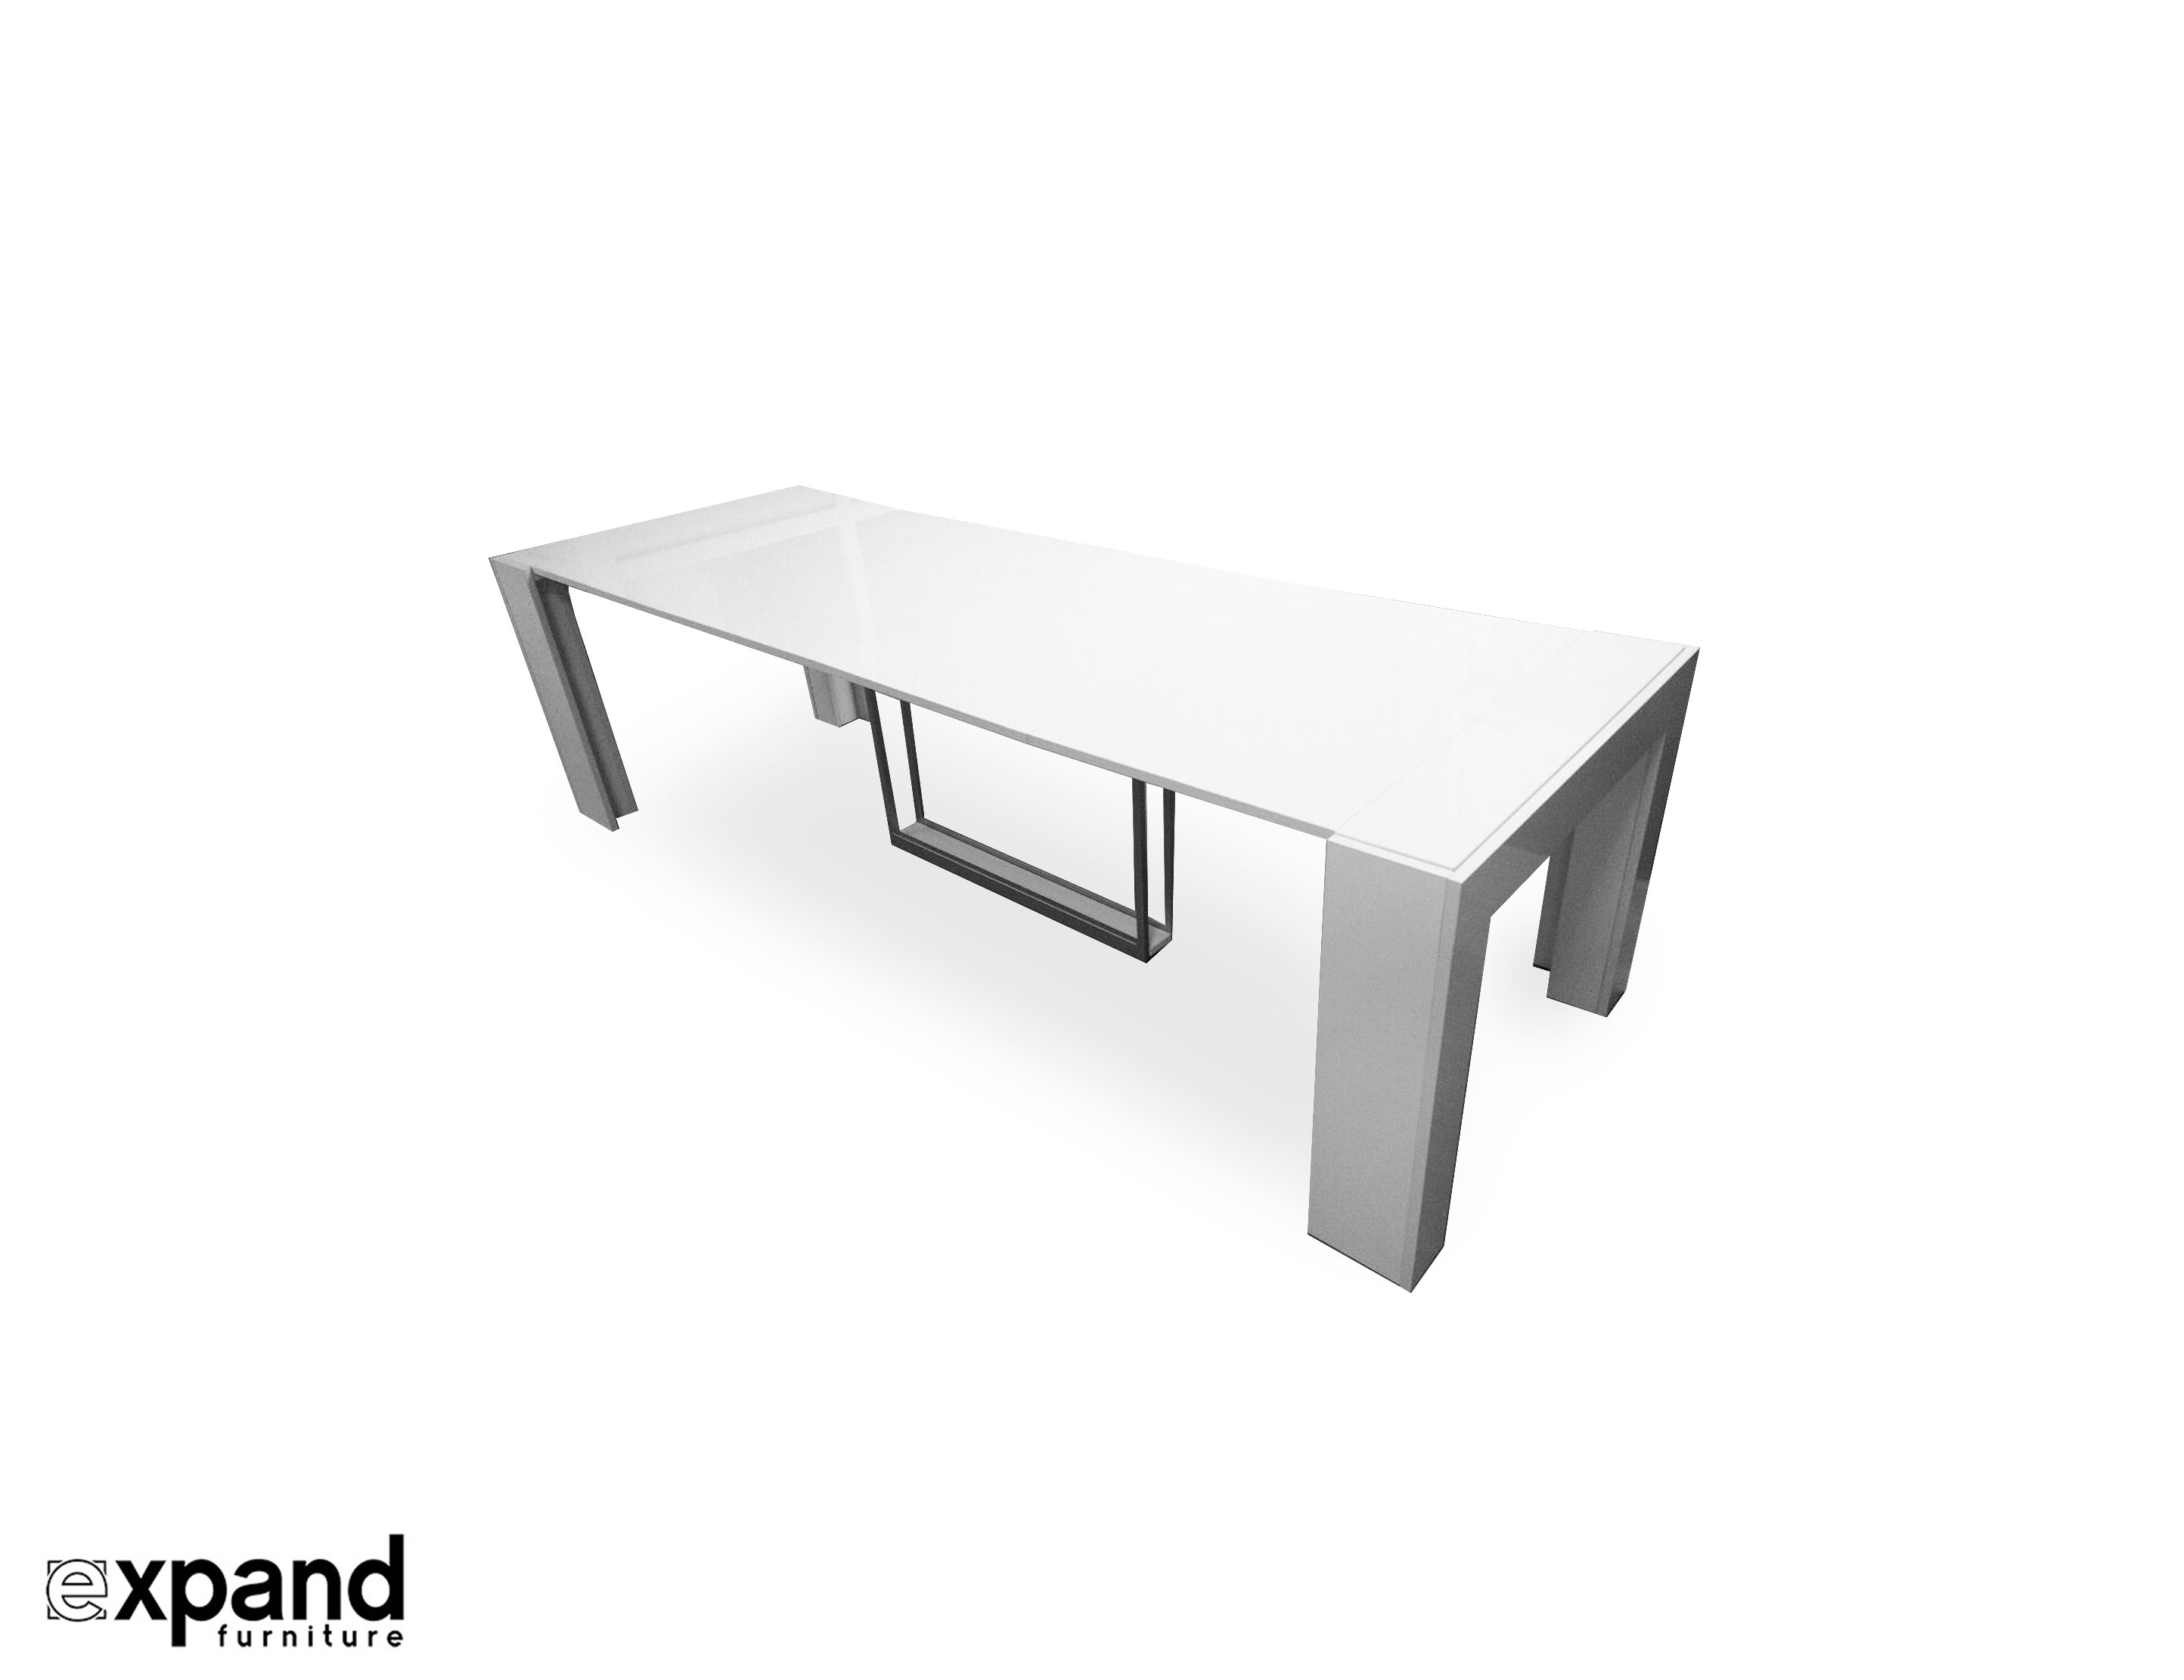 Calligaris Extendable Table Images Calligaris Airport  : Cubist Table with built in Extension Storage from favefaves.com size 2888 x 2222 jpeg 110kB